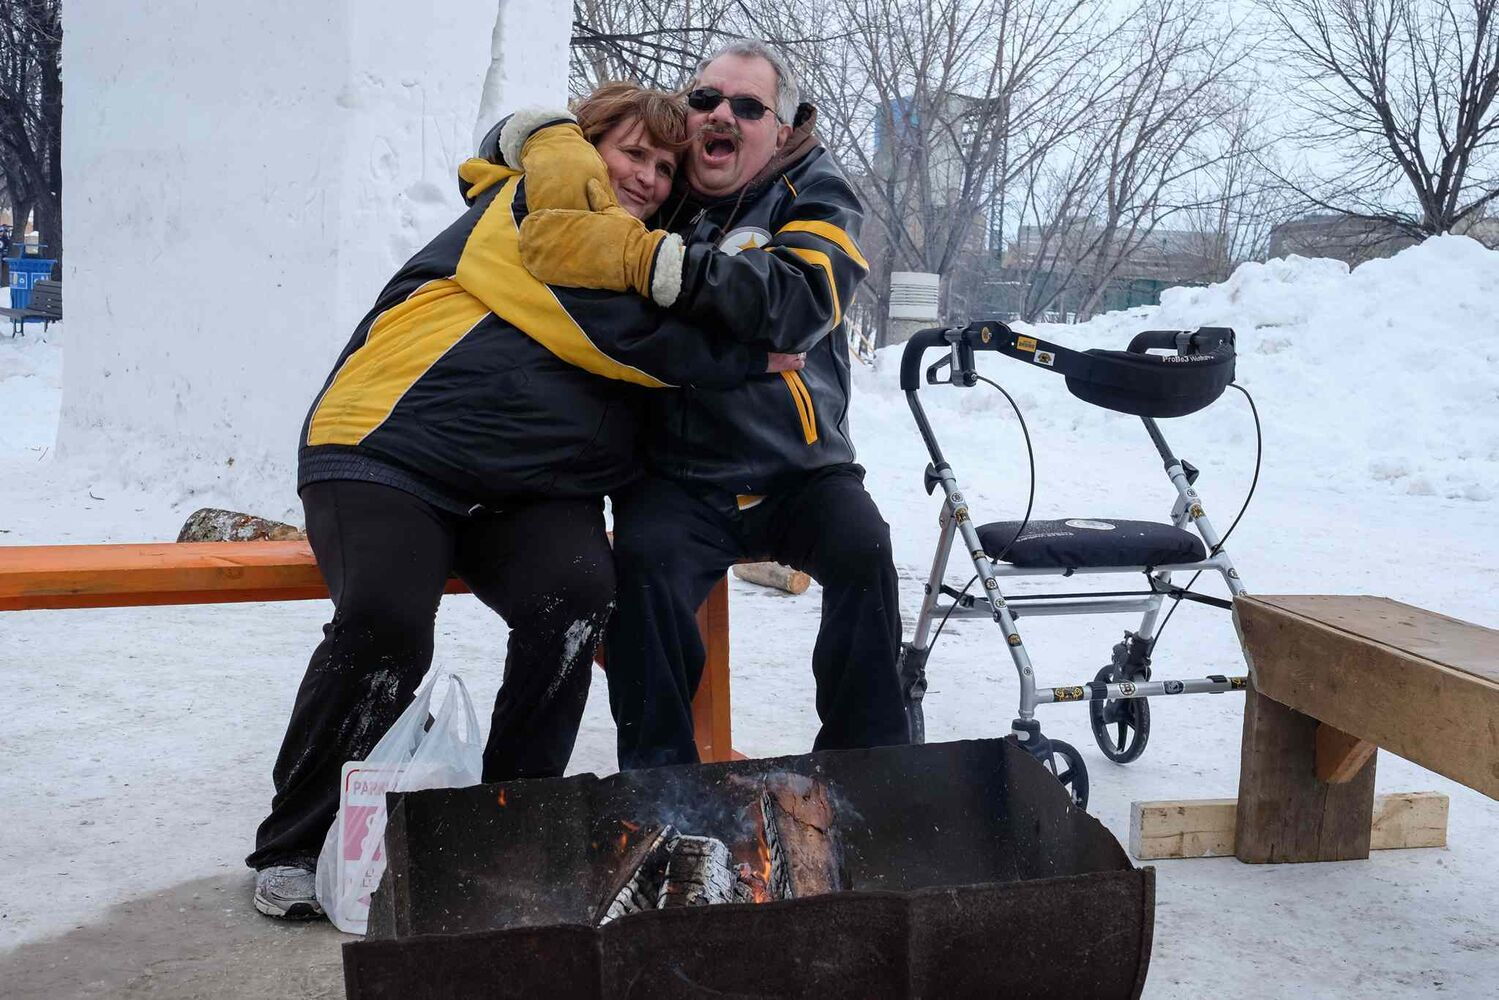 Warming up by one of the log fires at The Forks.